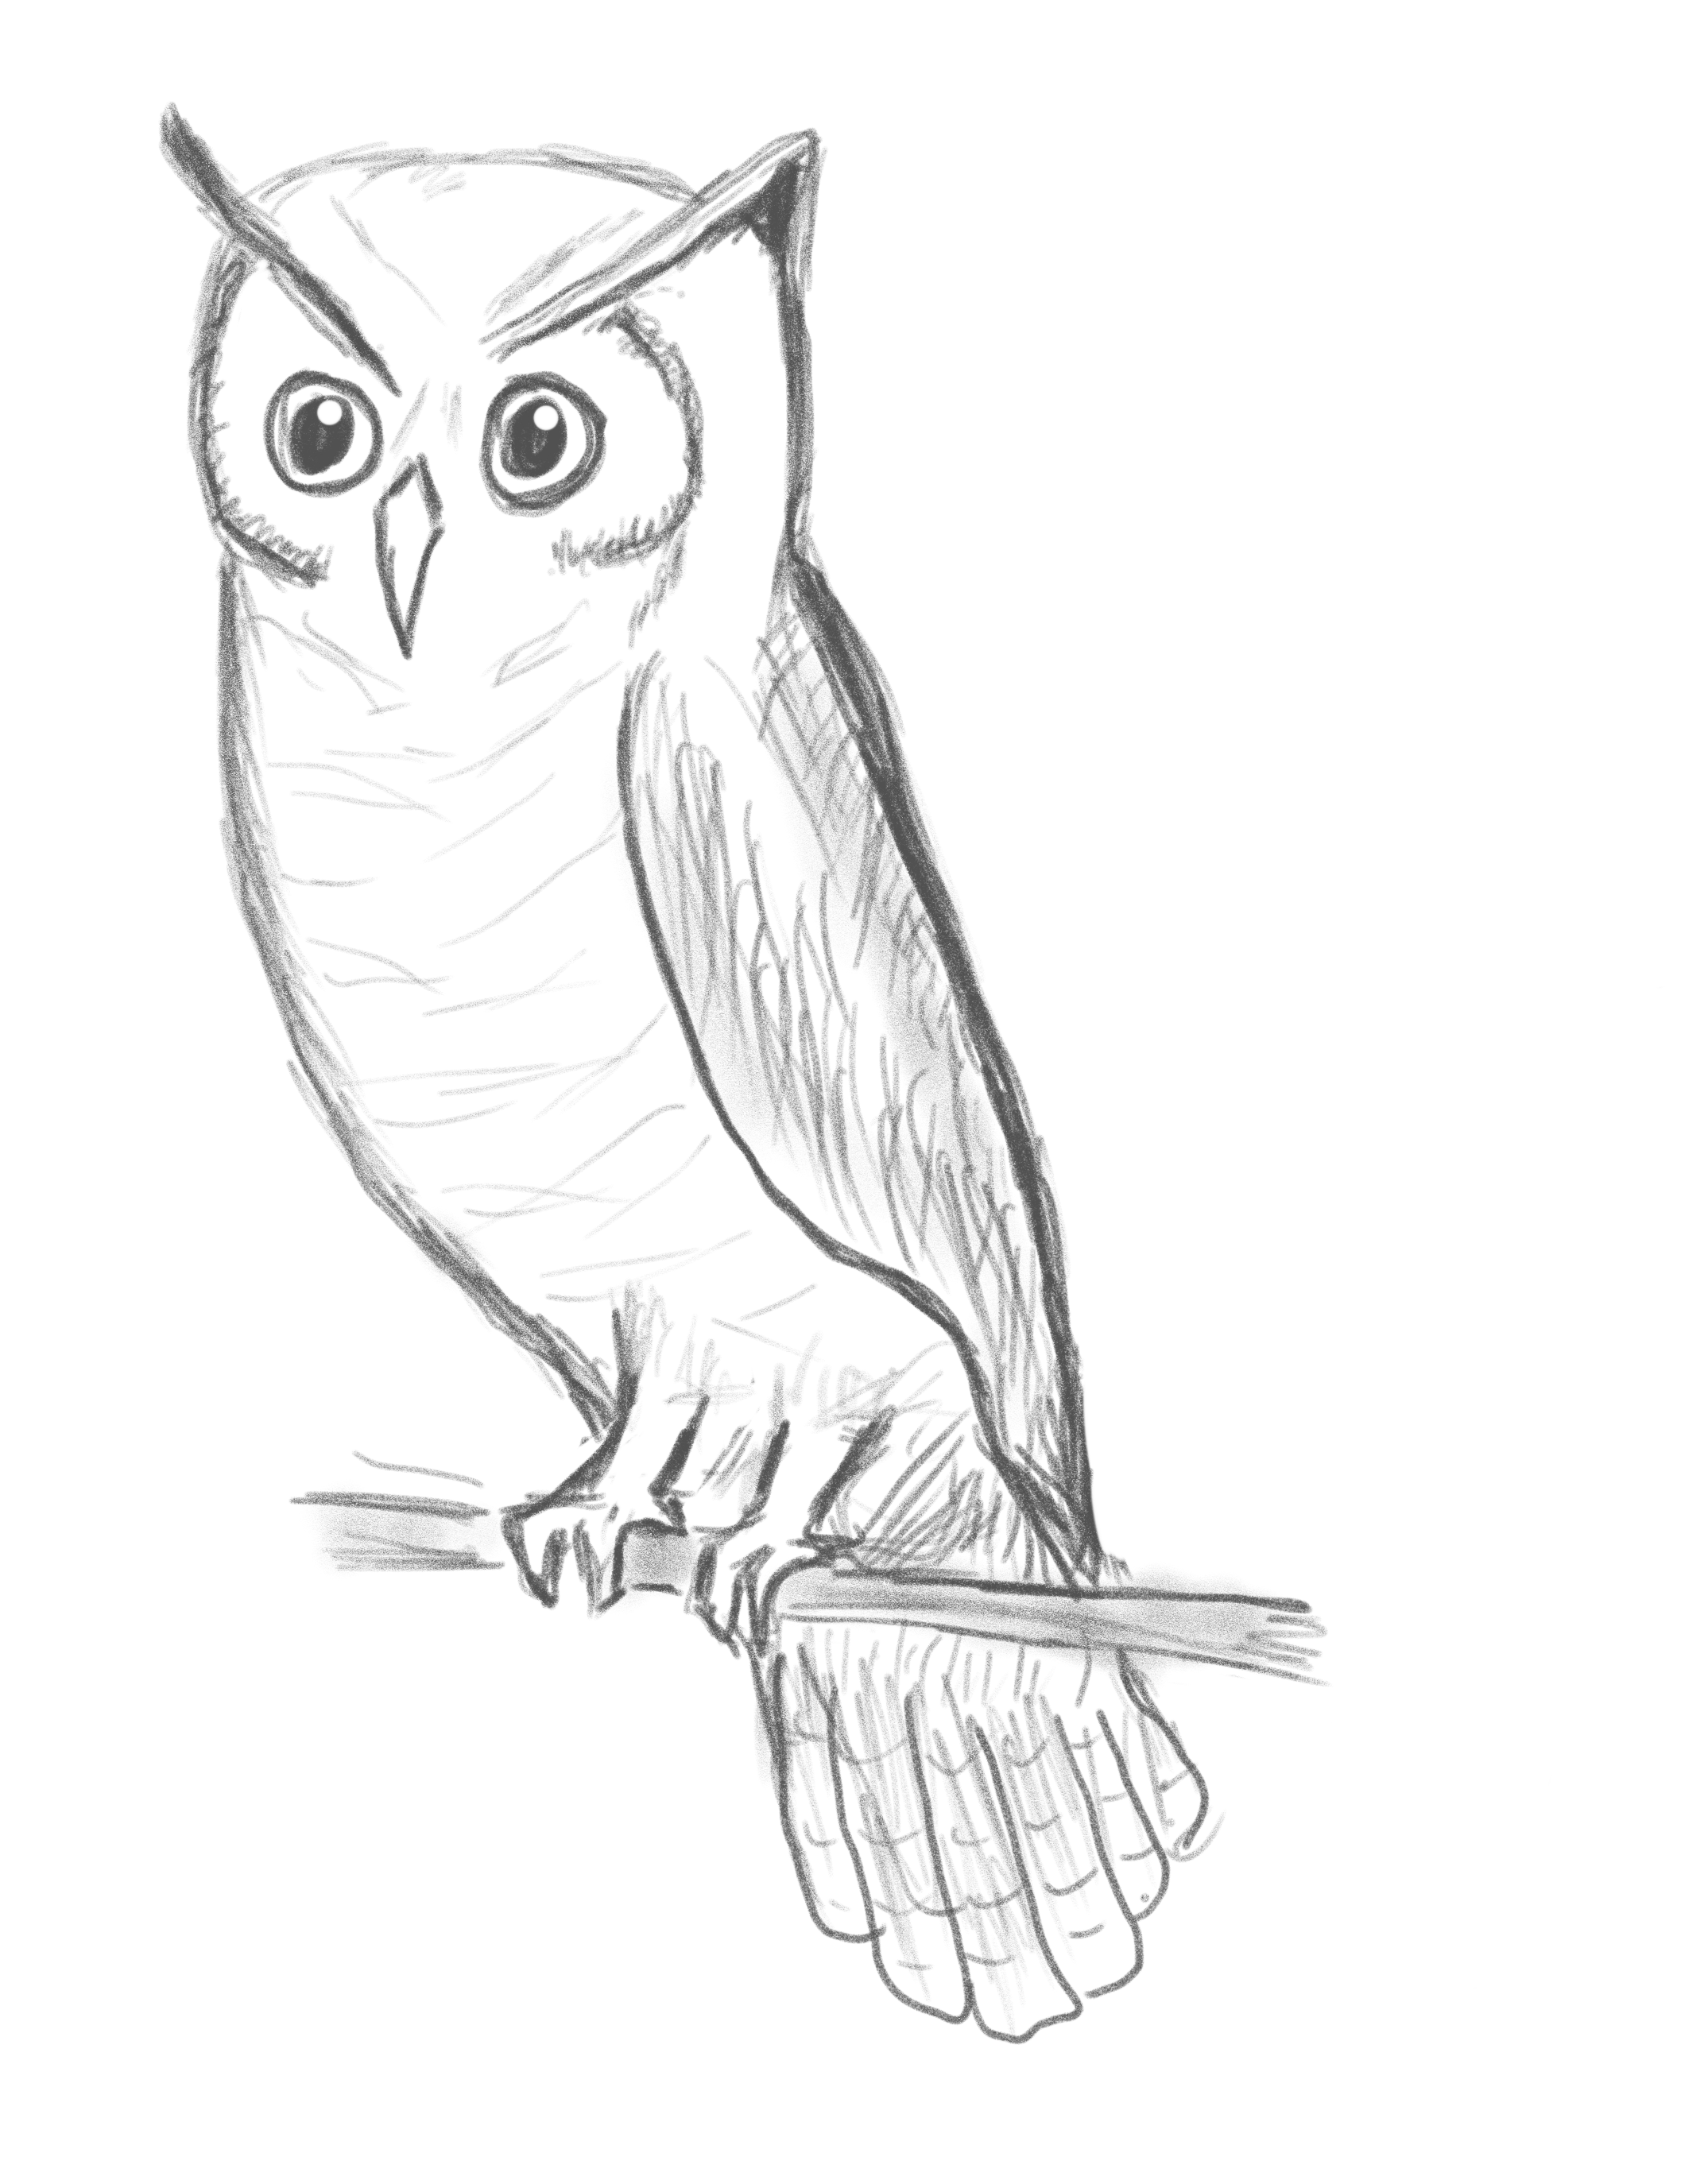 Sketch of an owl perched on a tree